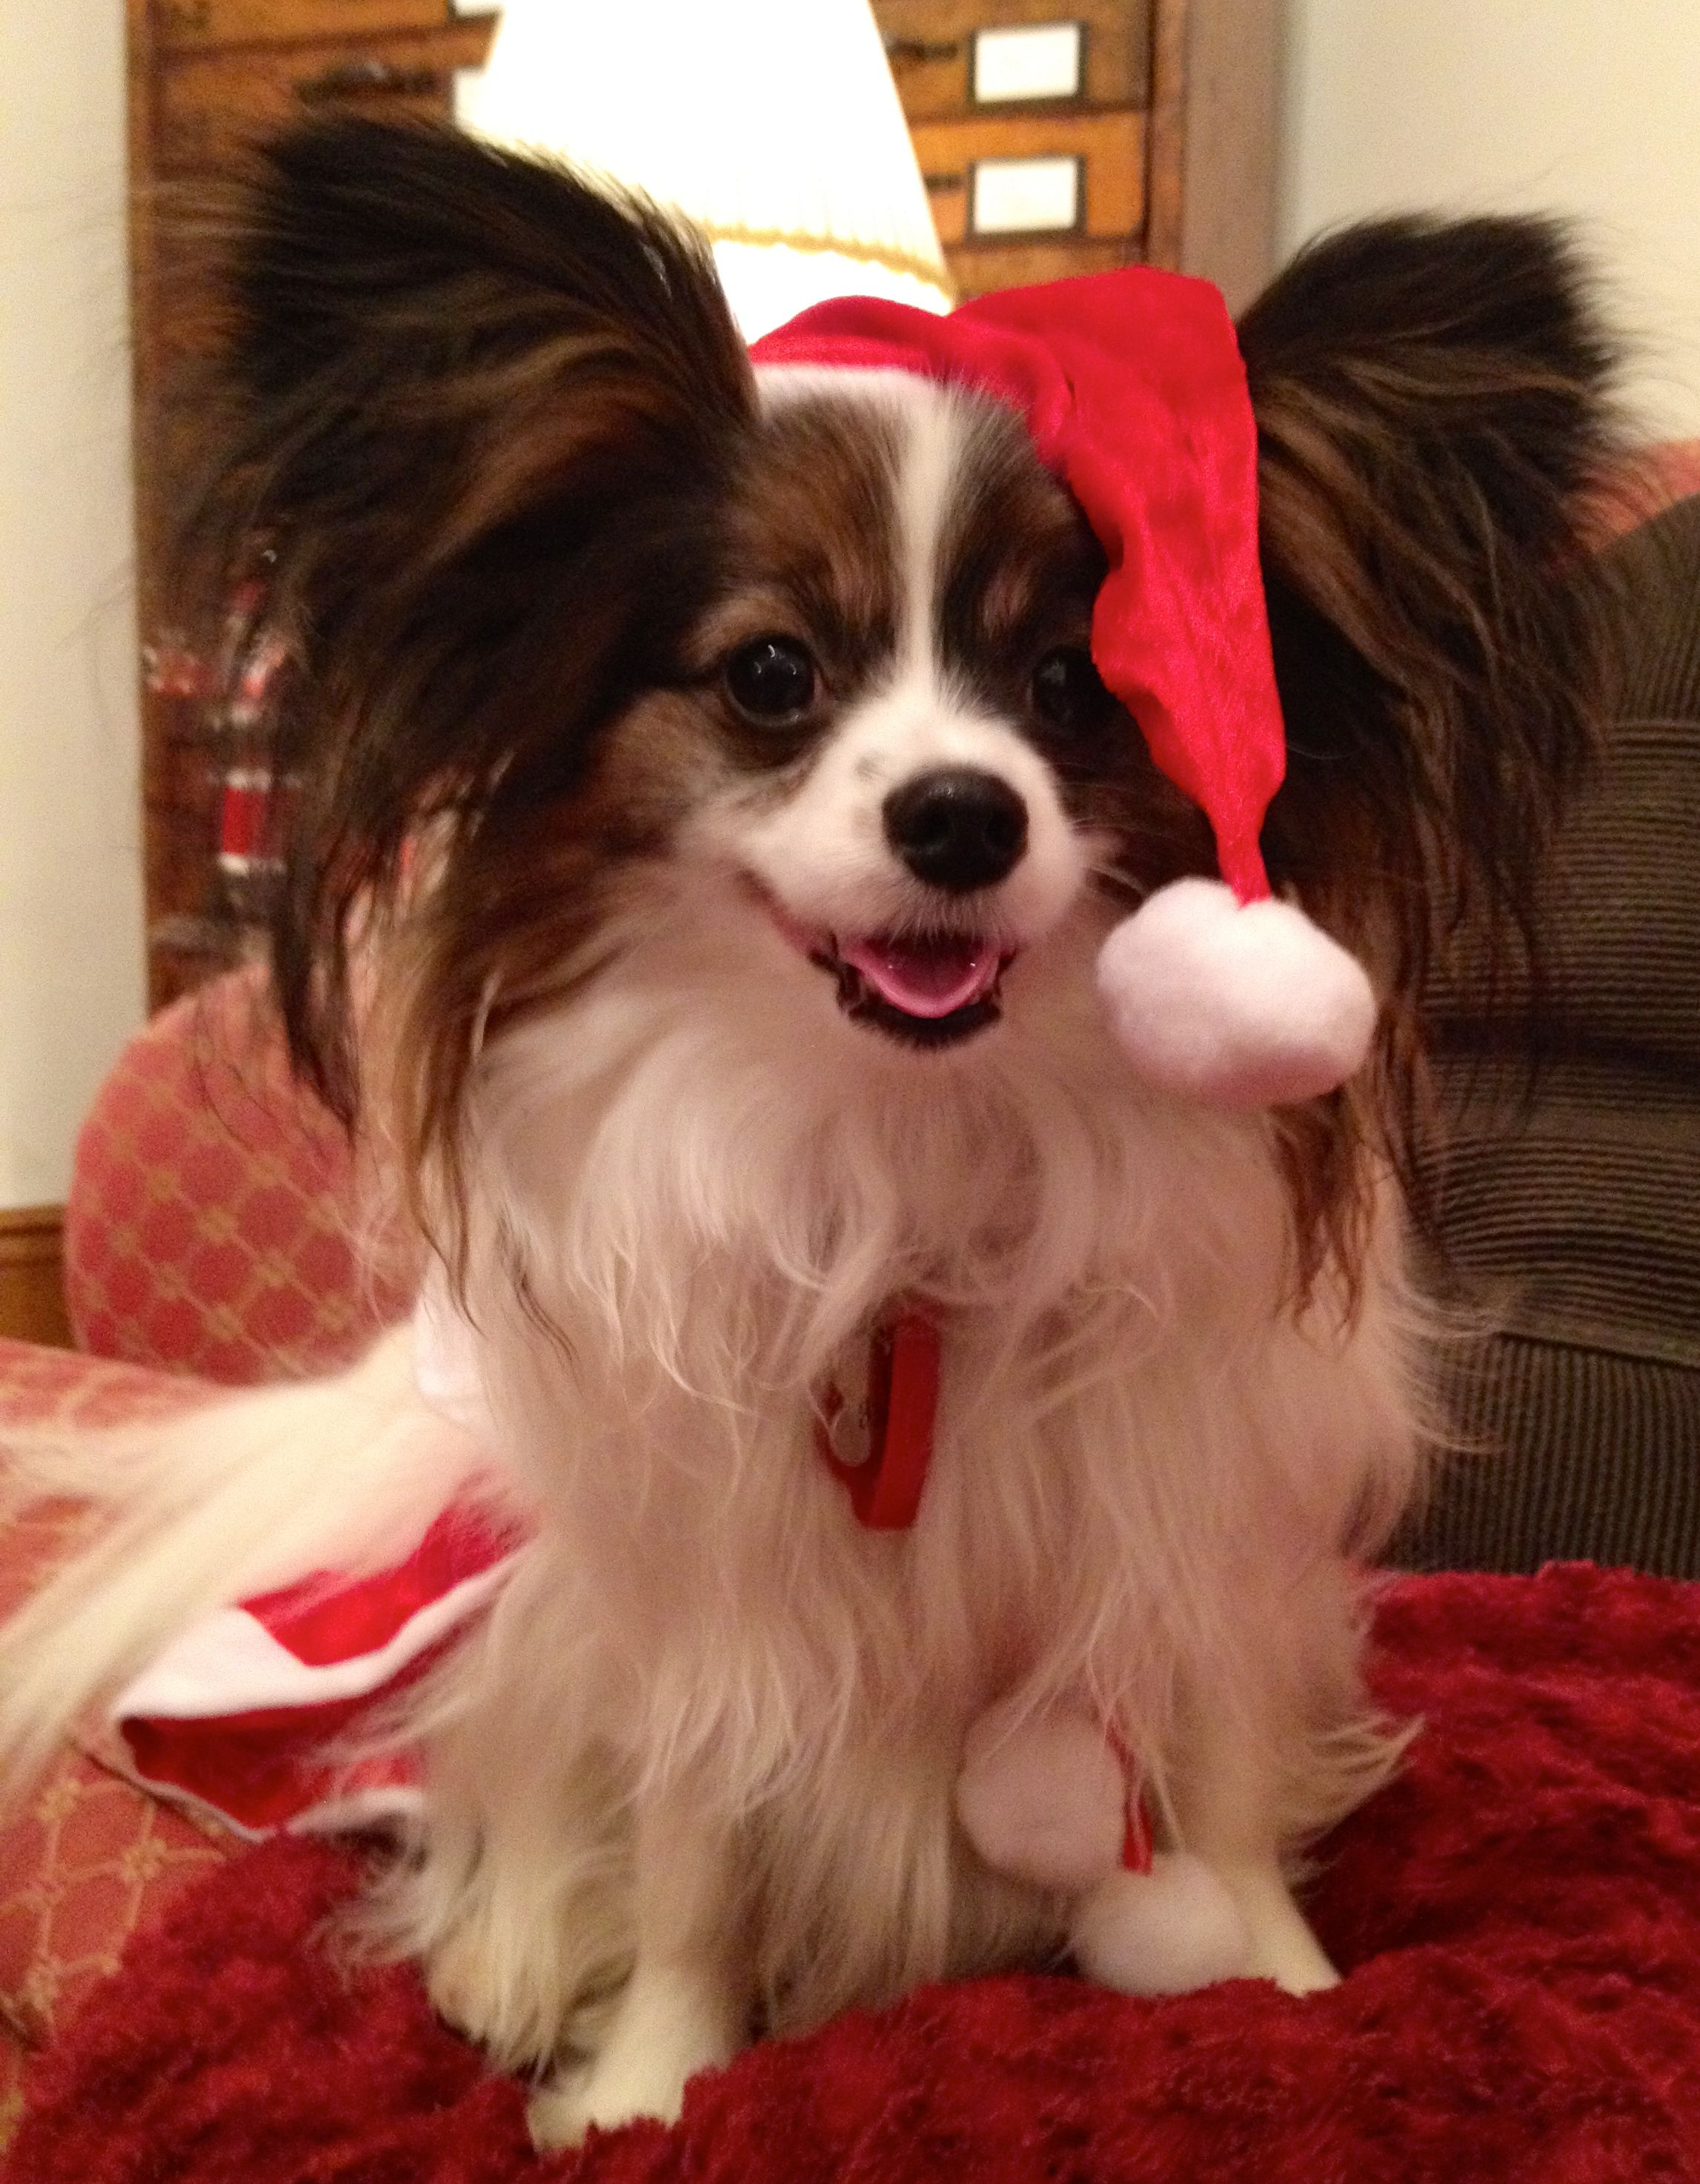 Christmas Dog (perhaps the night after) | Dogs ❤ | Pinterest